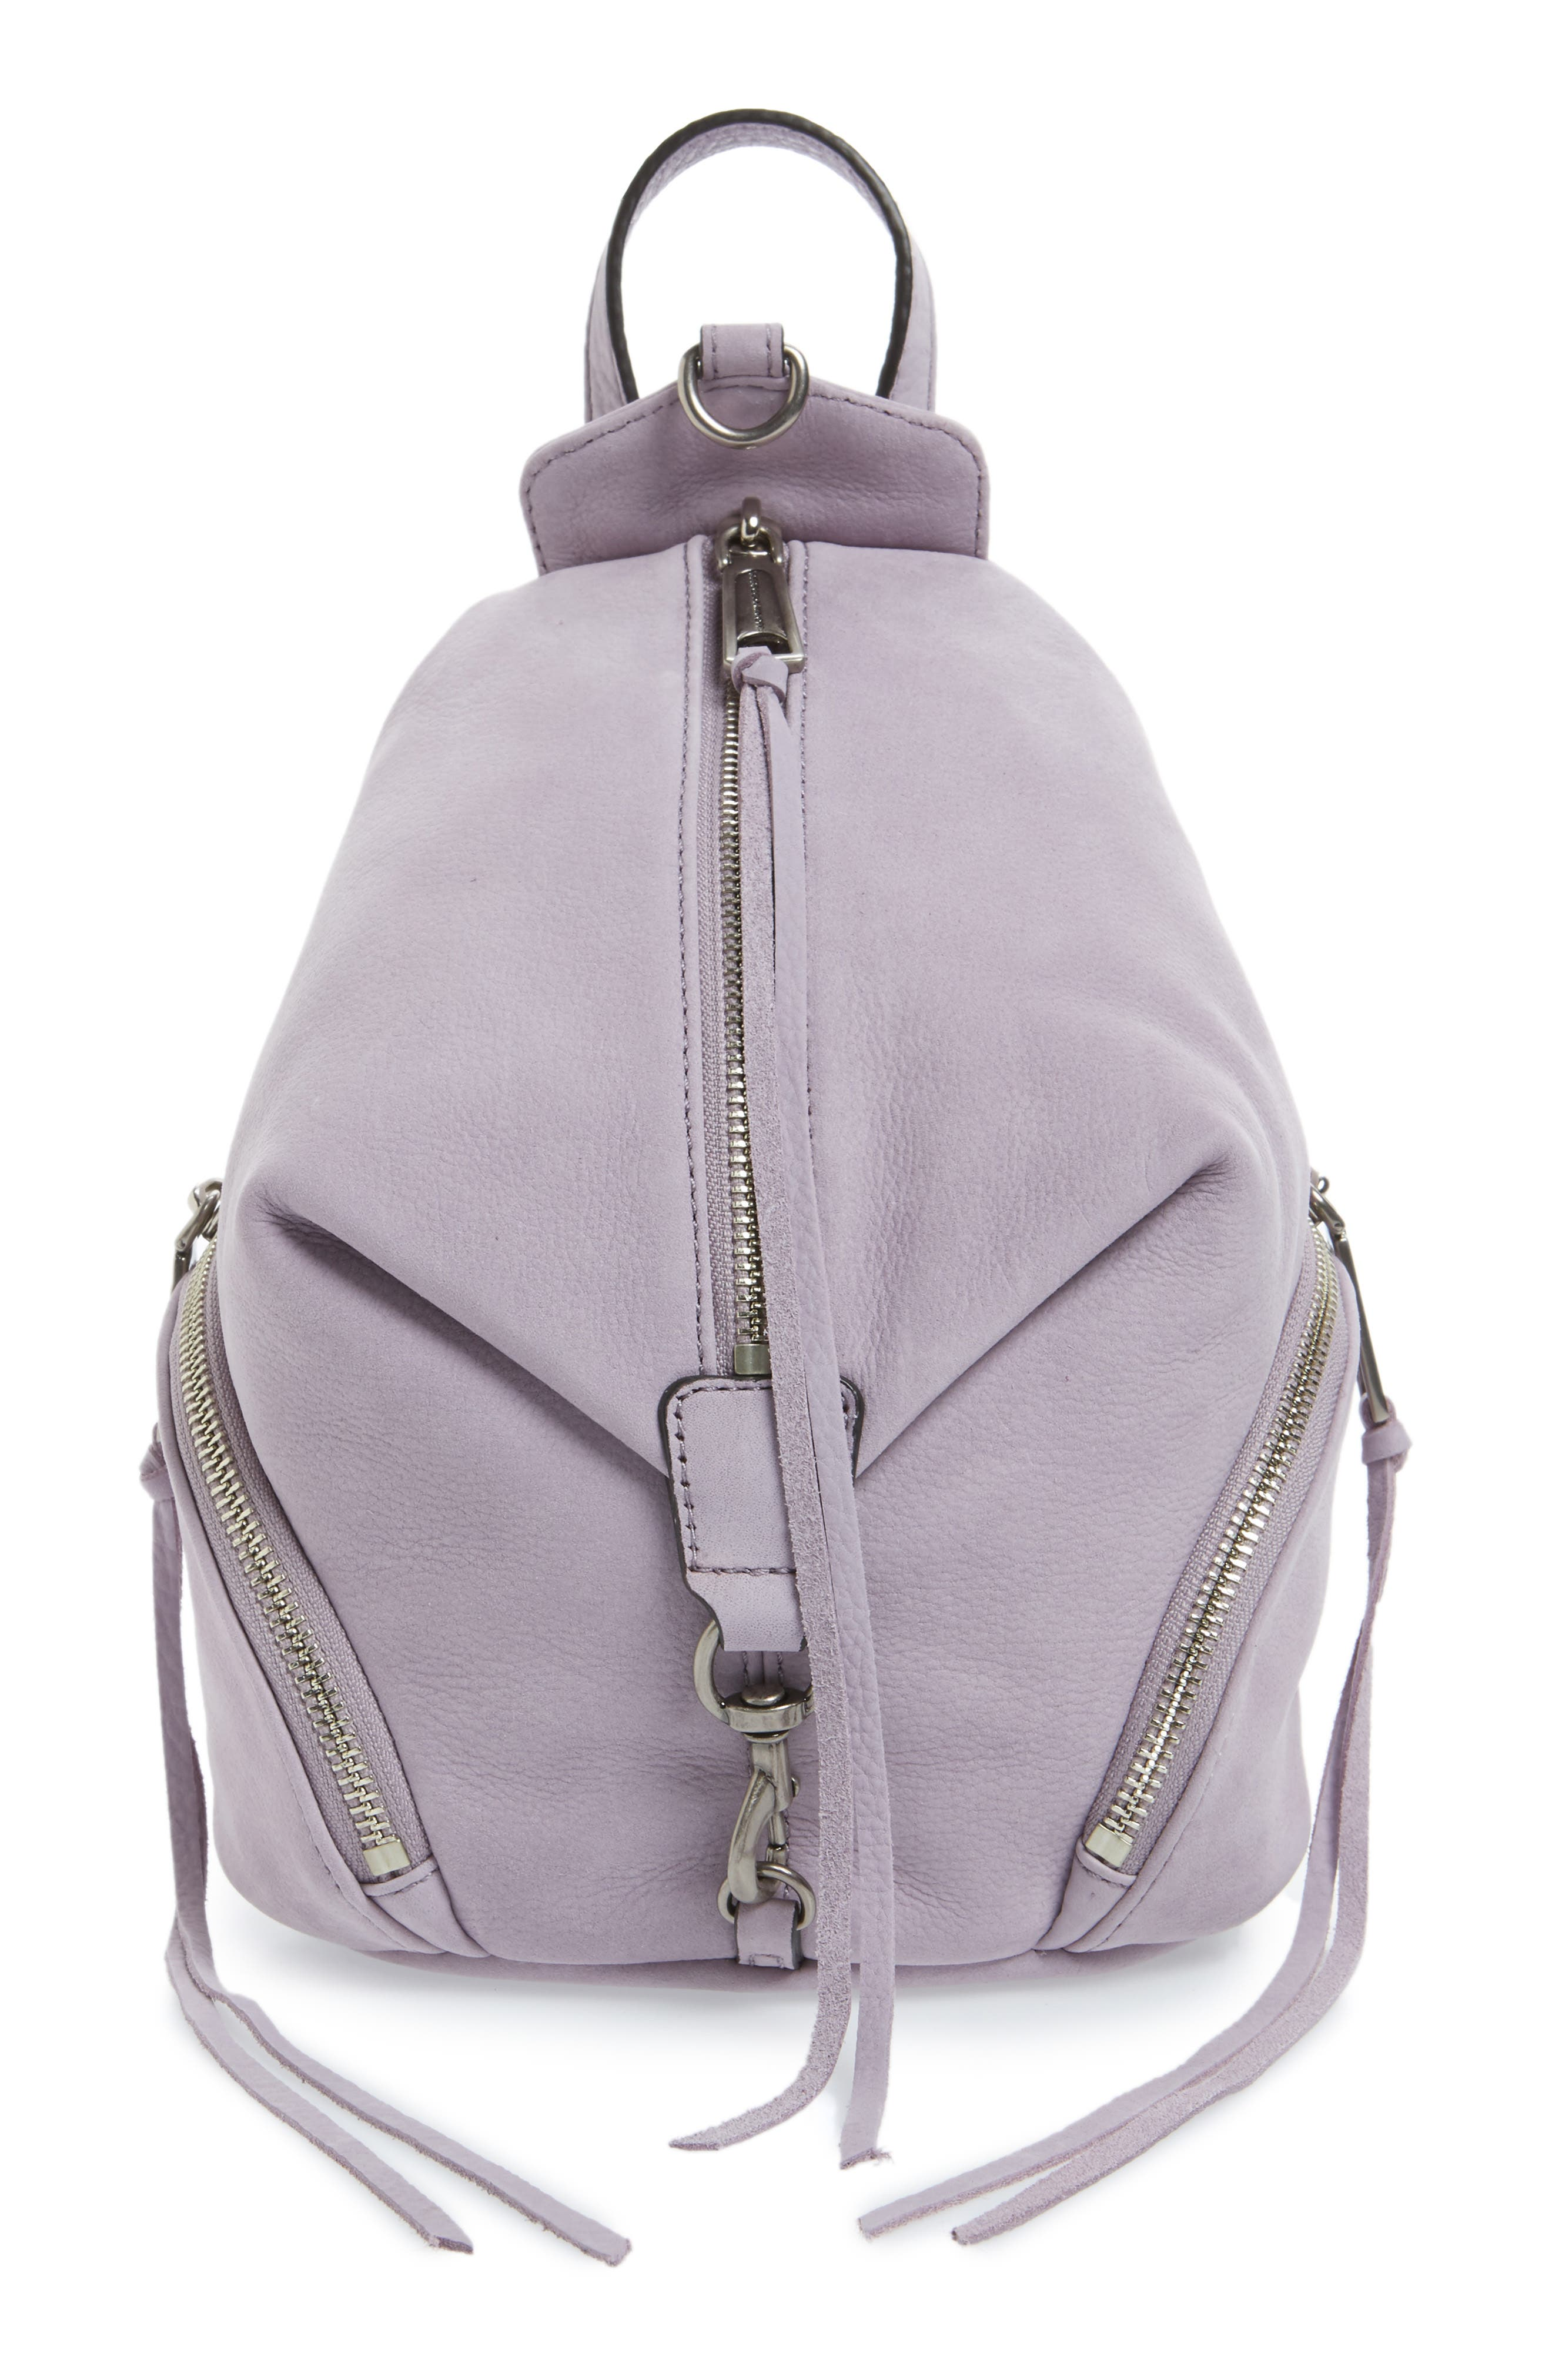 Main Image - Rebecca Minkoff Mini Julian Nubuck Leather Convertible Backpack